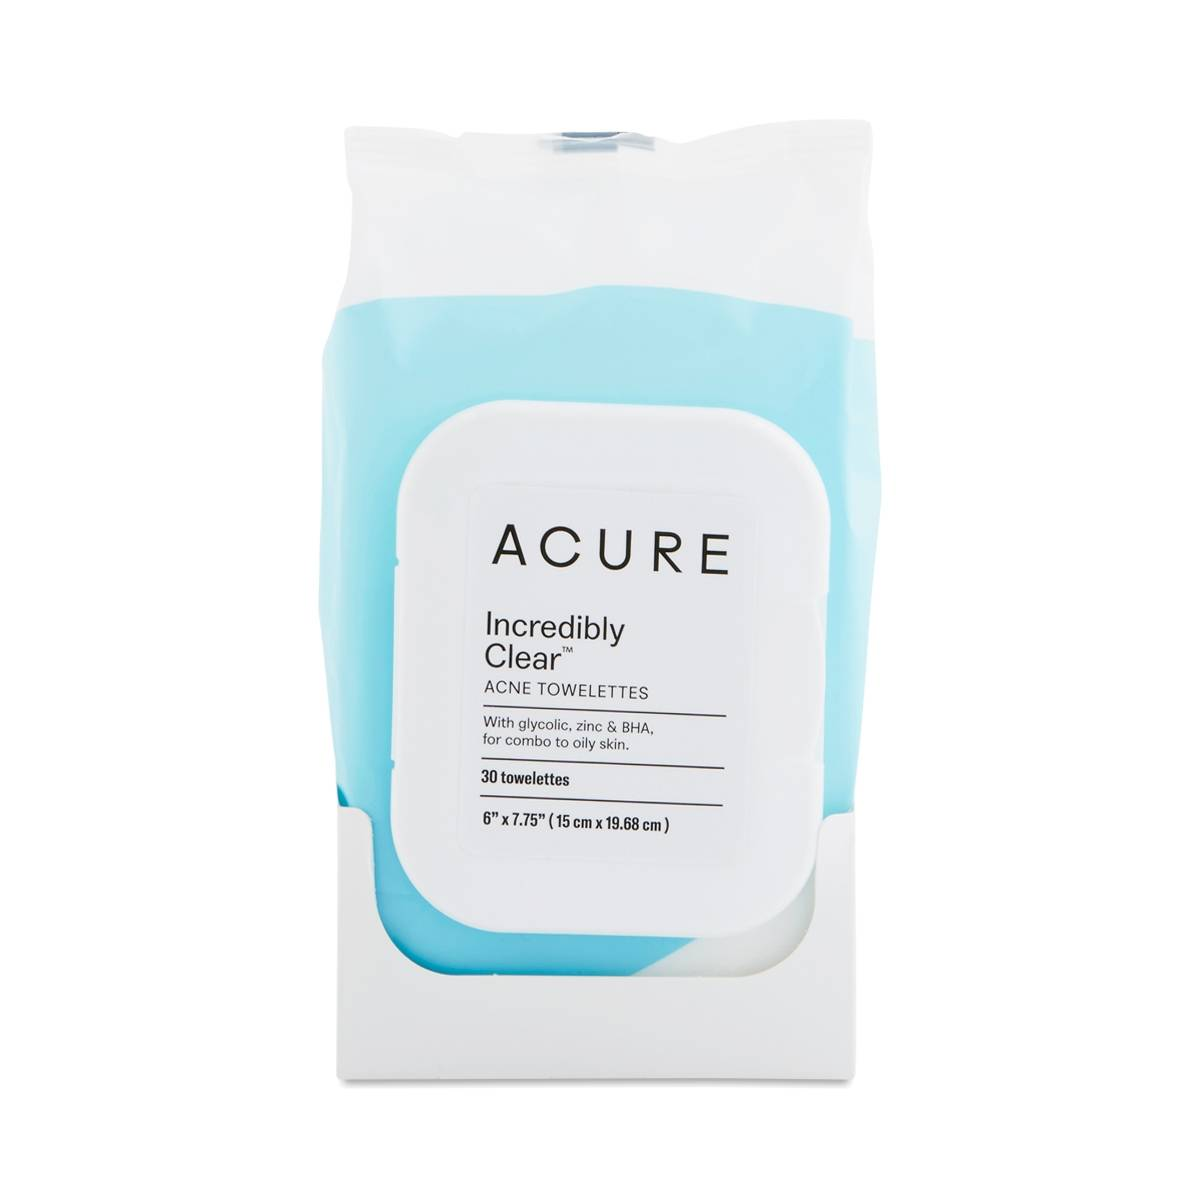 Acne Towelettes By Acure